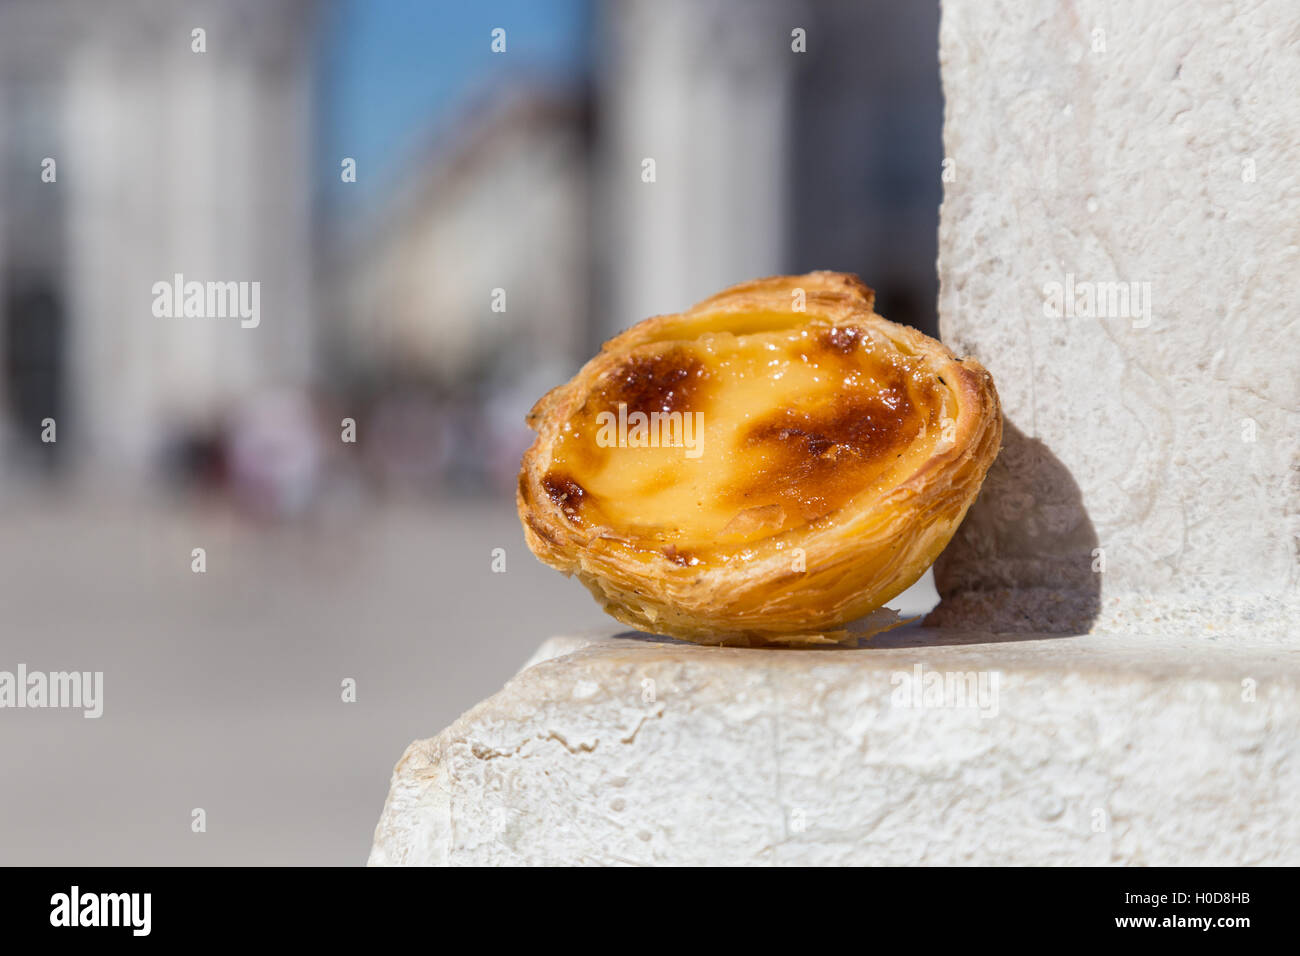 How to make portuguese natas itsallaboutportugesedeserts - Traditional Portuguese Egg Tart Pasty Cake Dessert Pasteis De Nata On Background Attractions In Lisbon